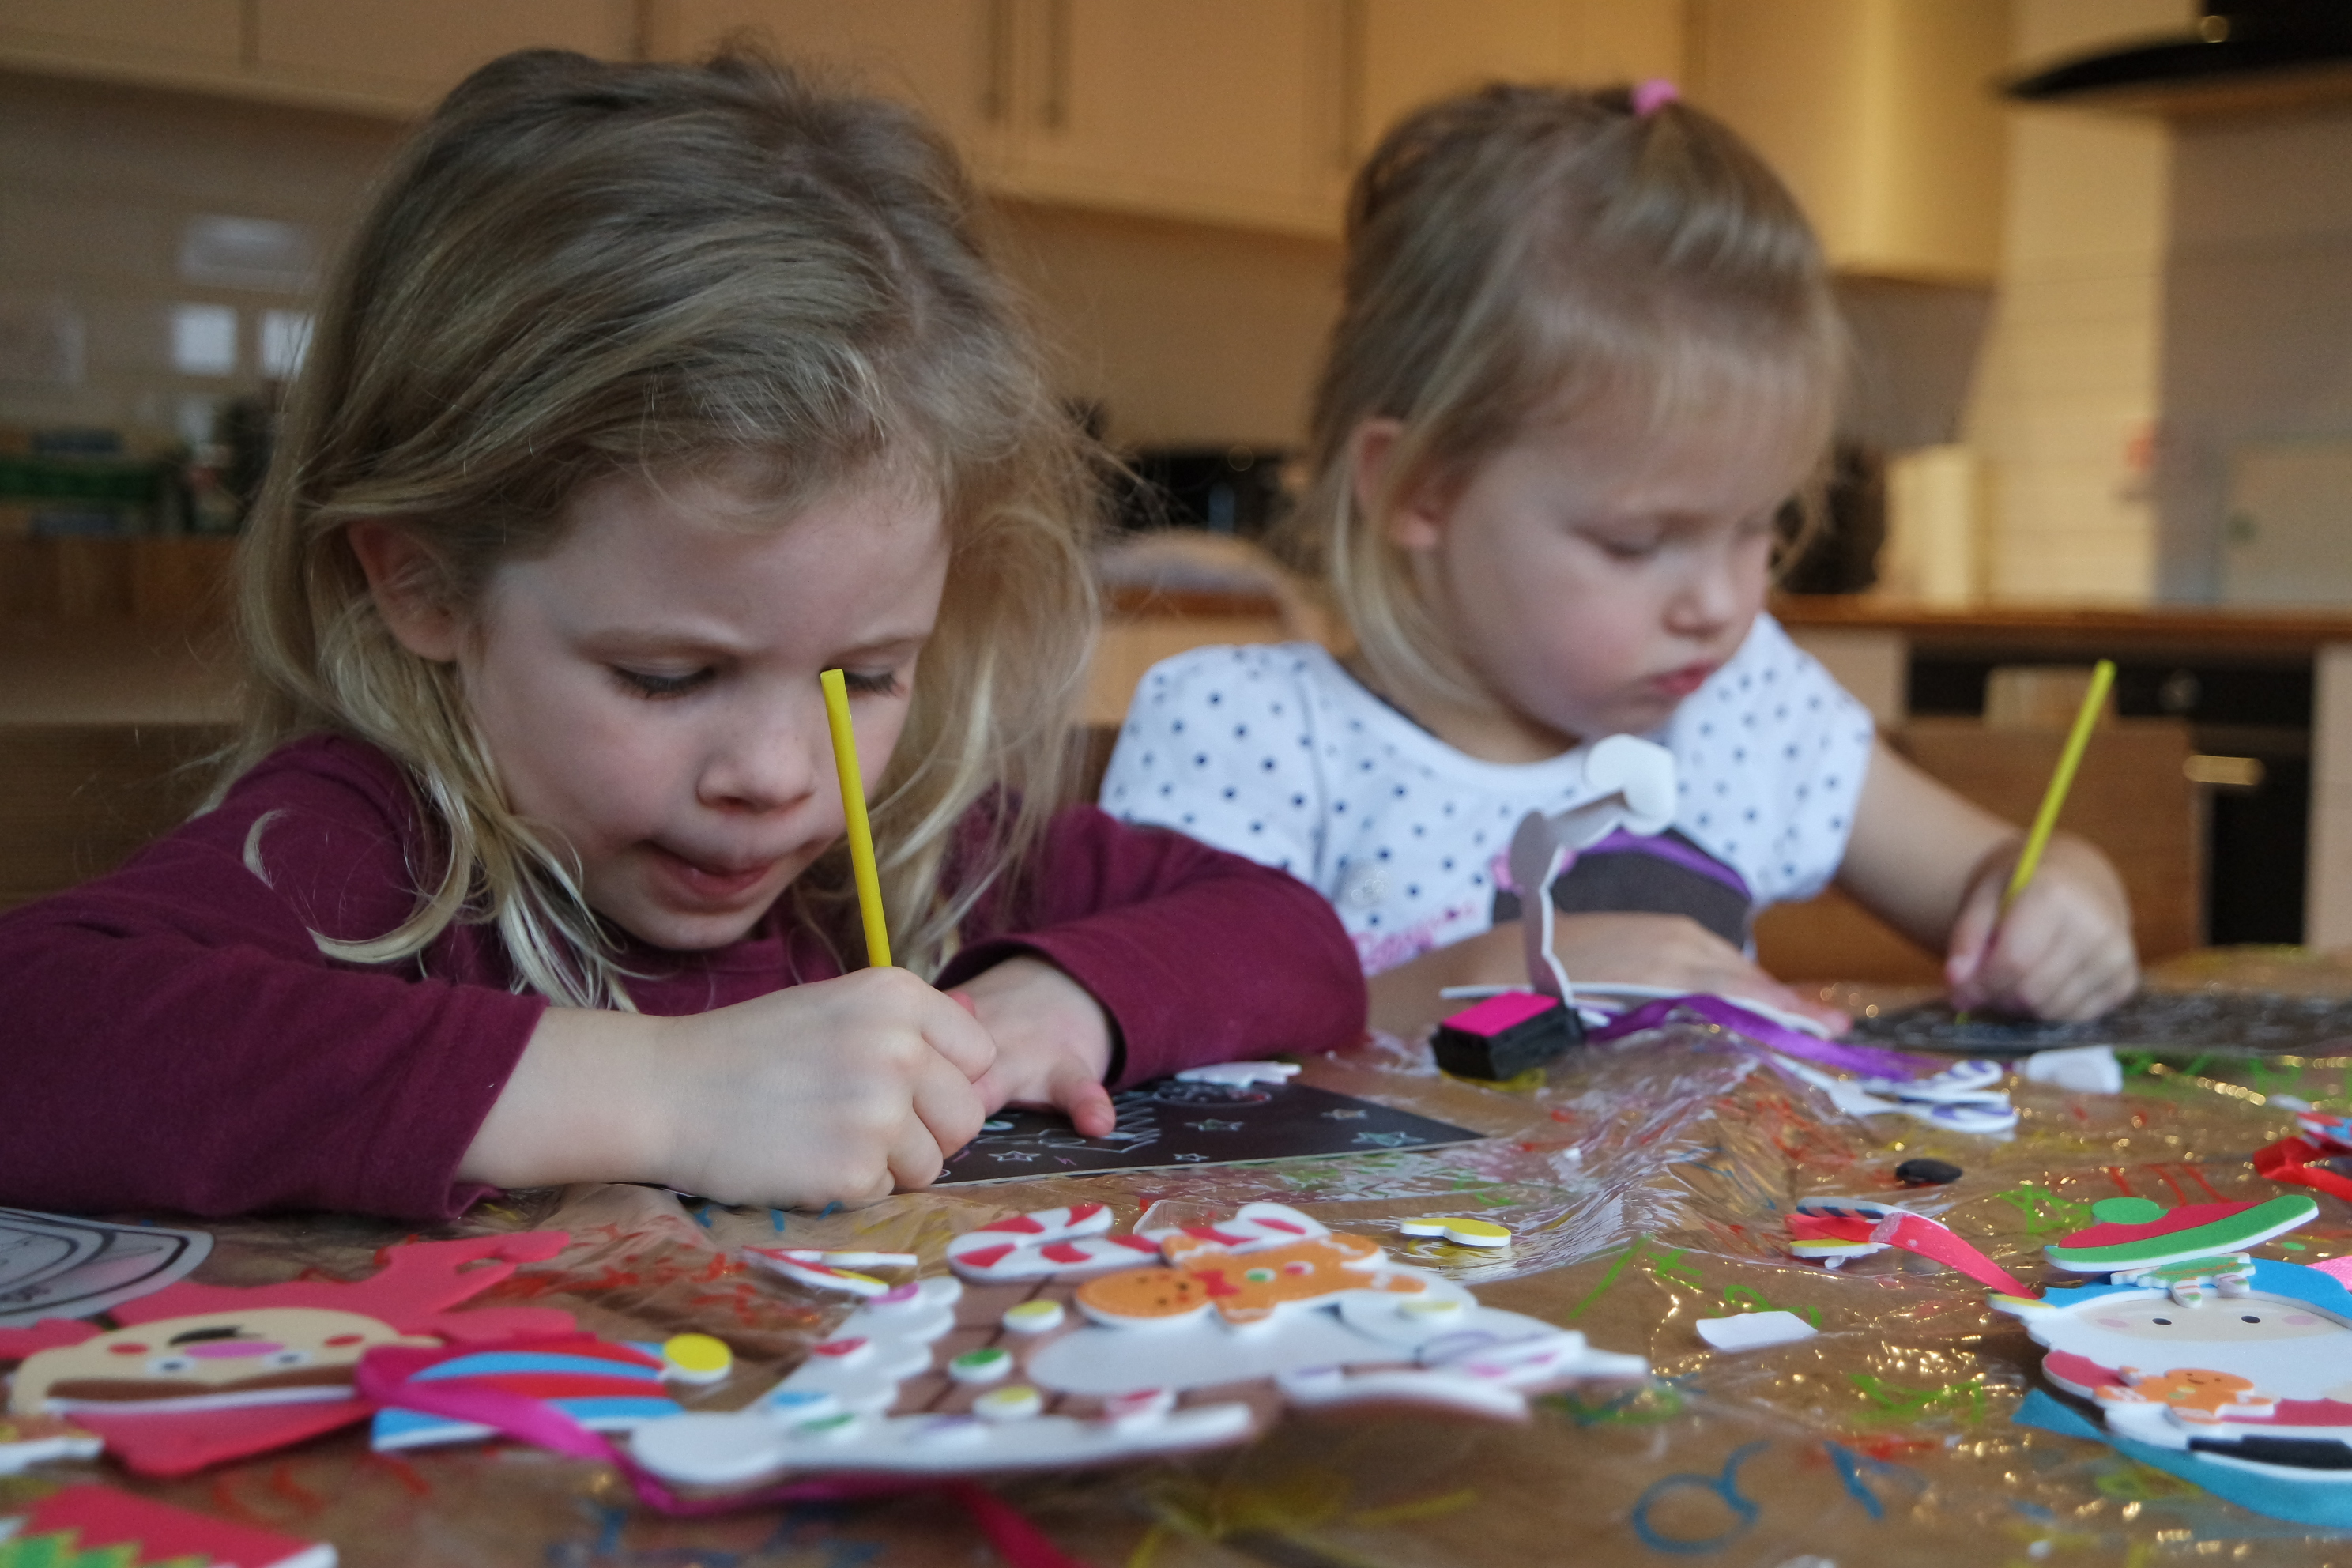 Christmas crafts for the little ones from Baker Ross